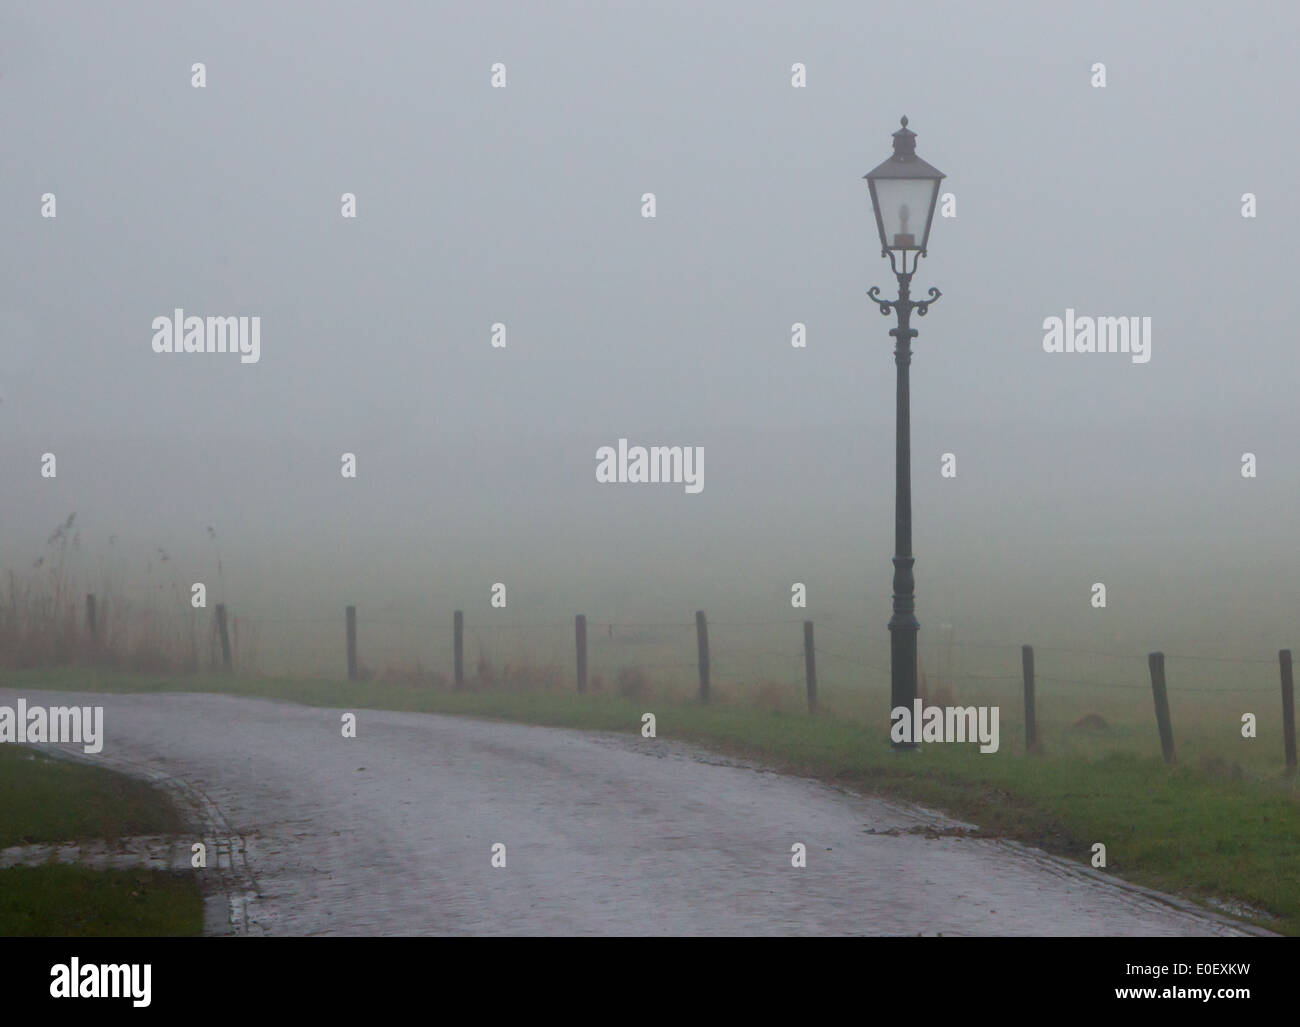 Lantern at a misty road, Ameland - Holland Stock Photo